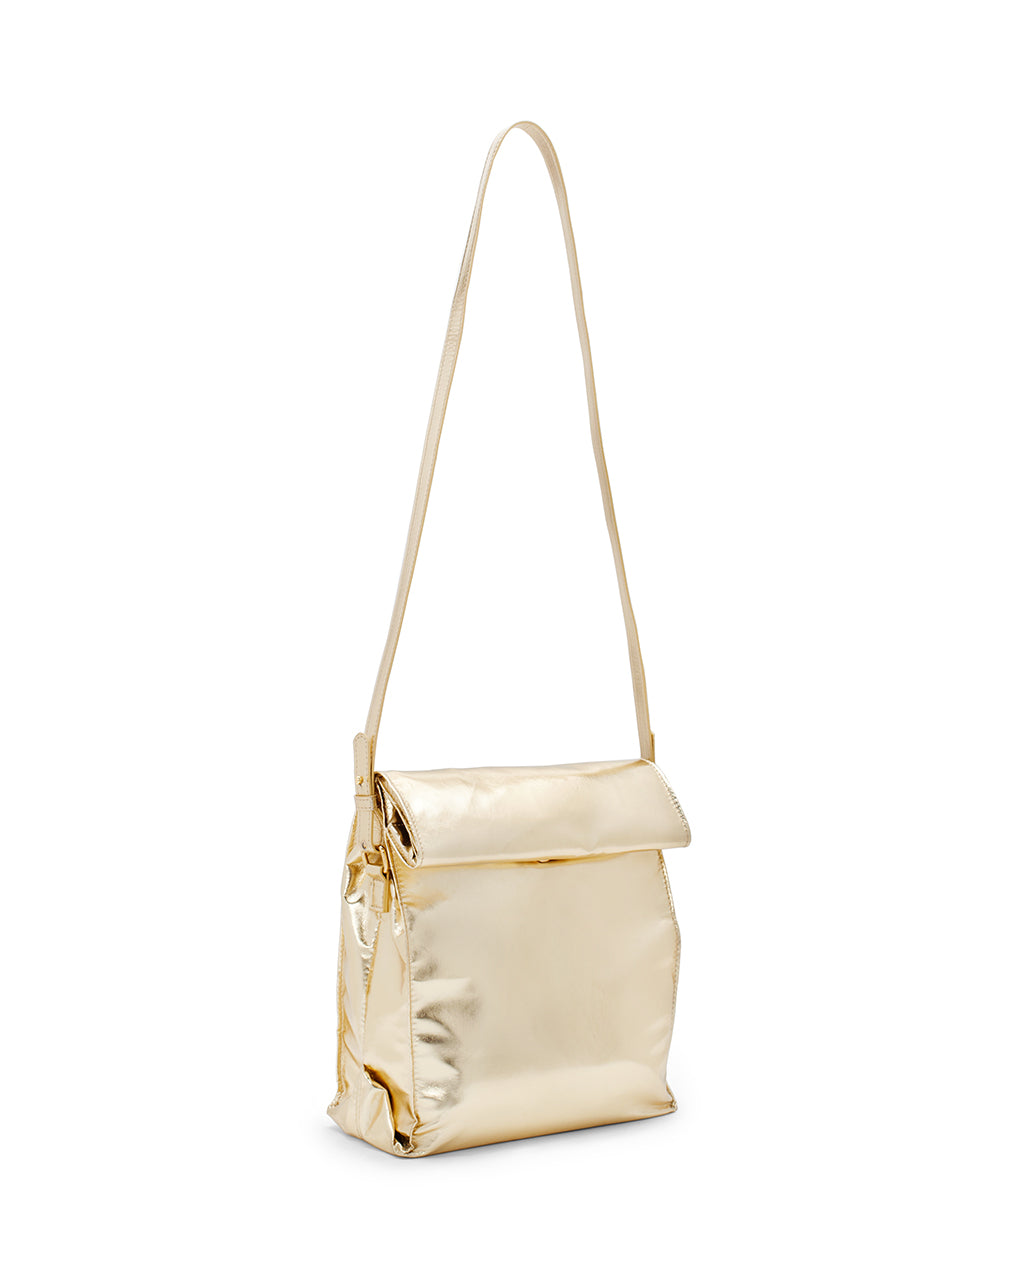 Gold lunch bag with long strap